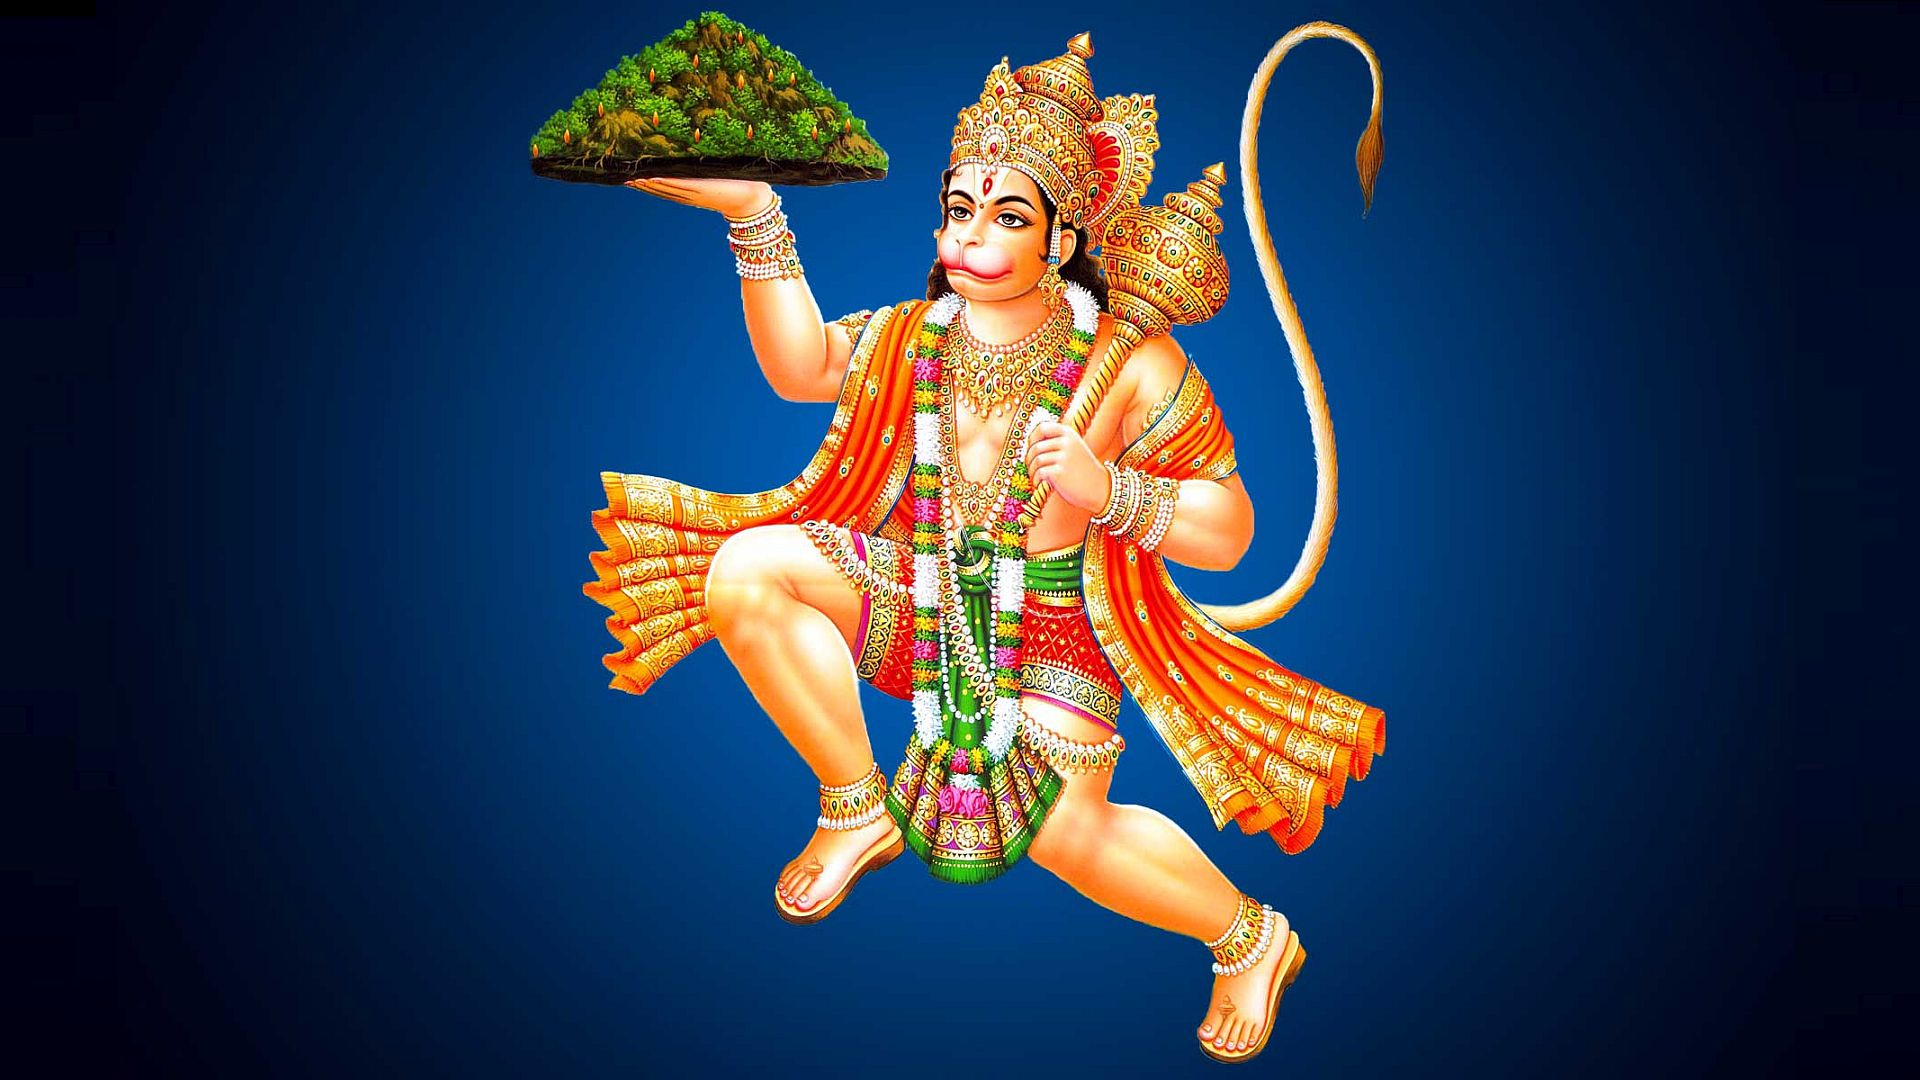 Lord Hanuman Wallpaper Ima Hindu Gods And Goddesses